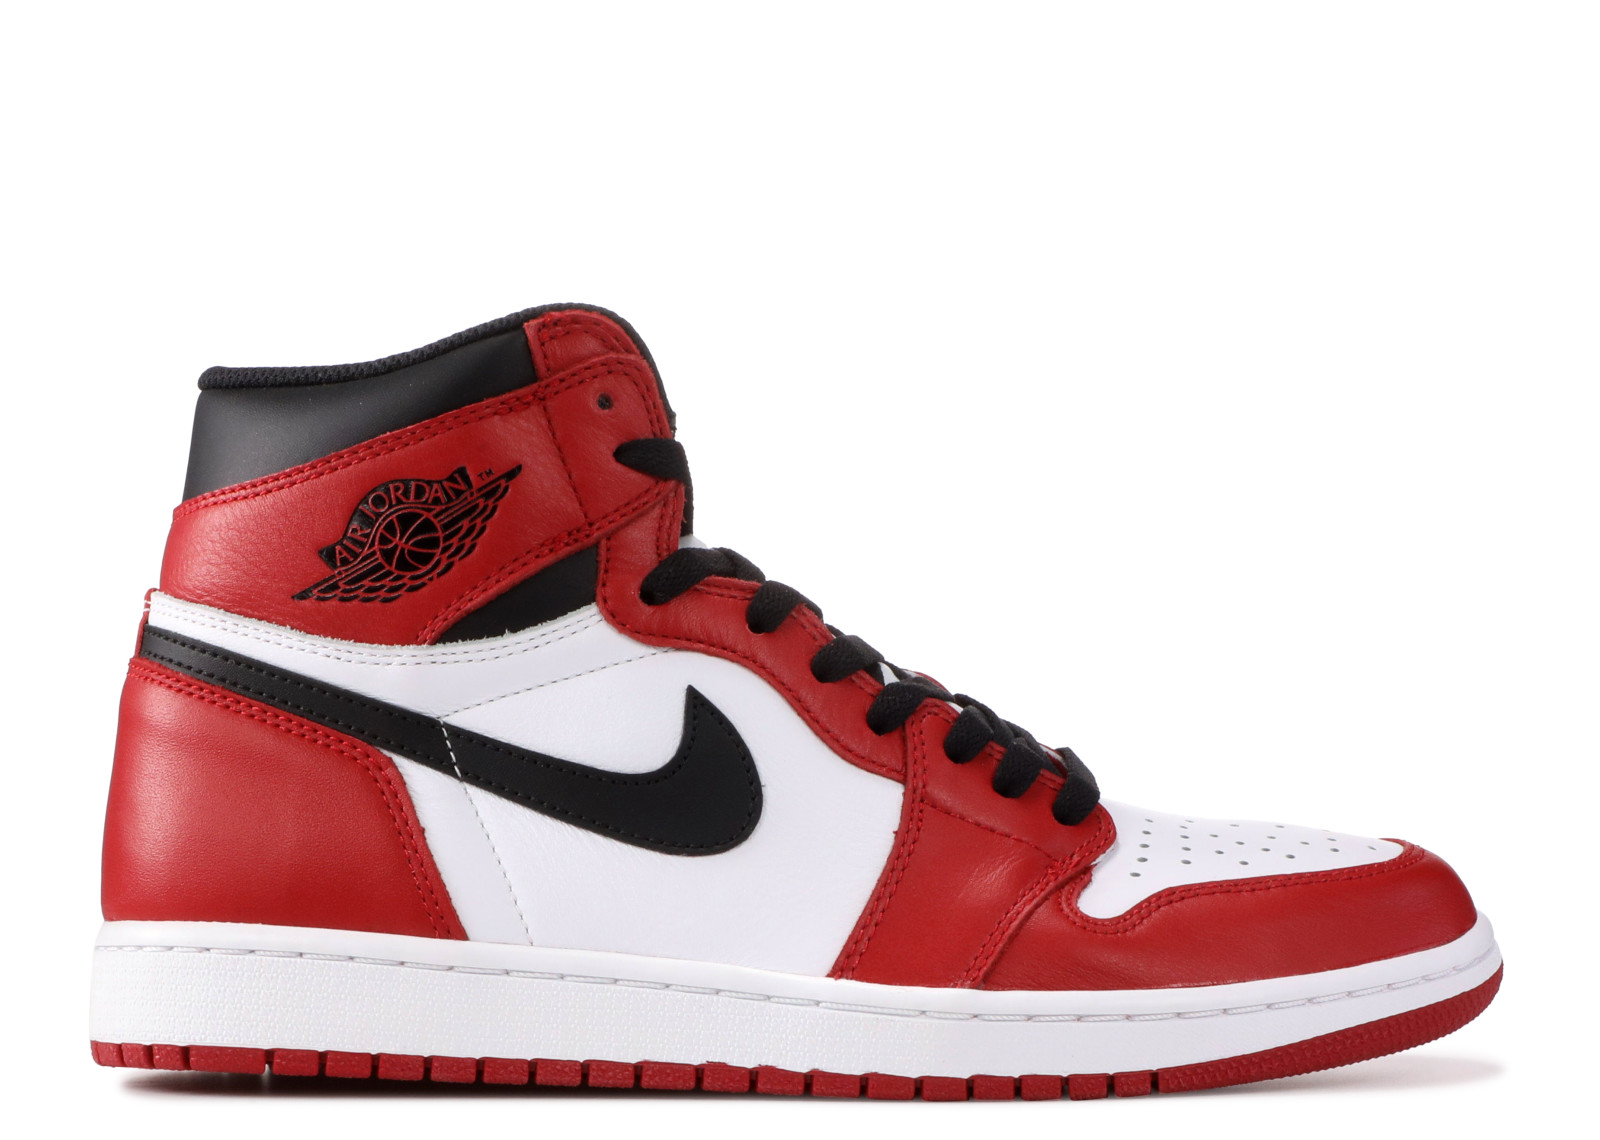 How to tell if your Air Jordan 1s are fake